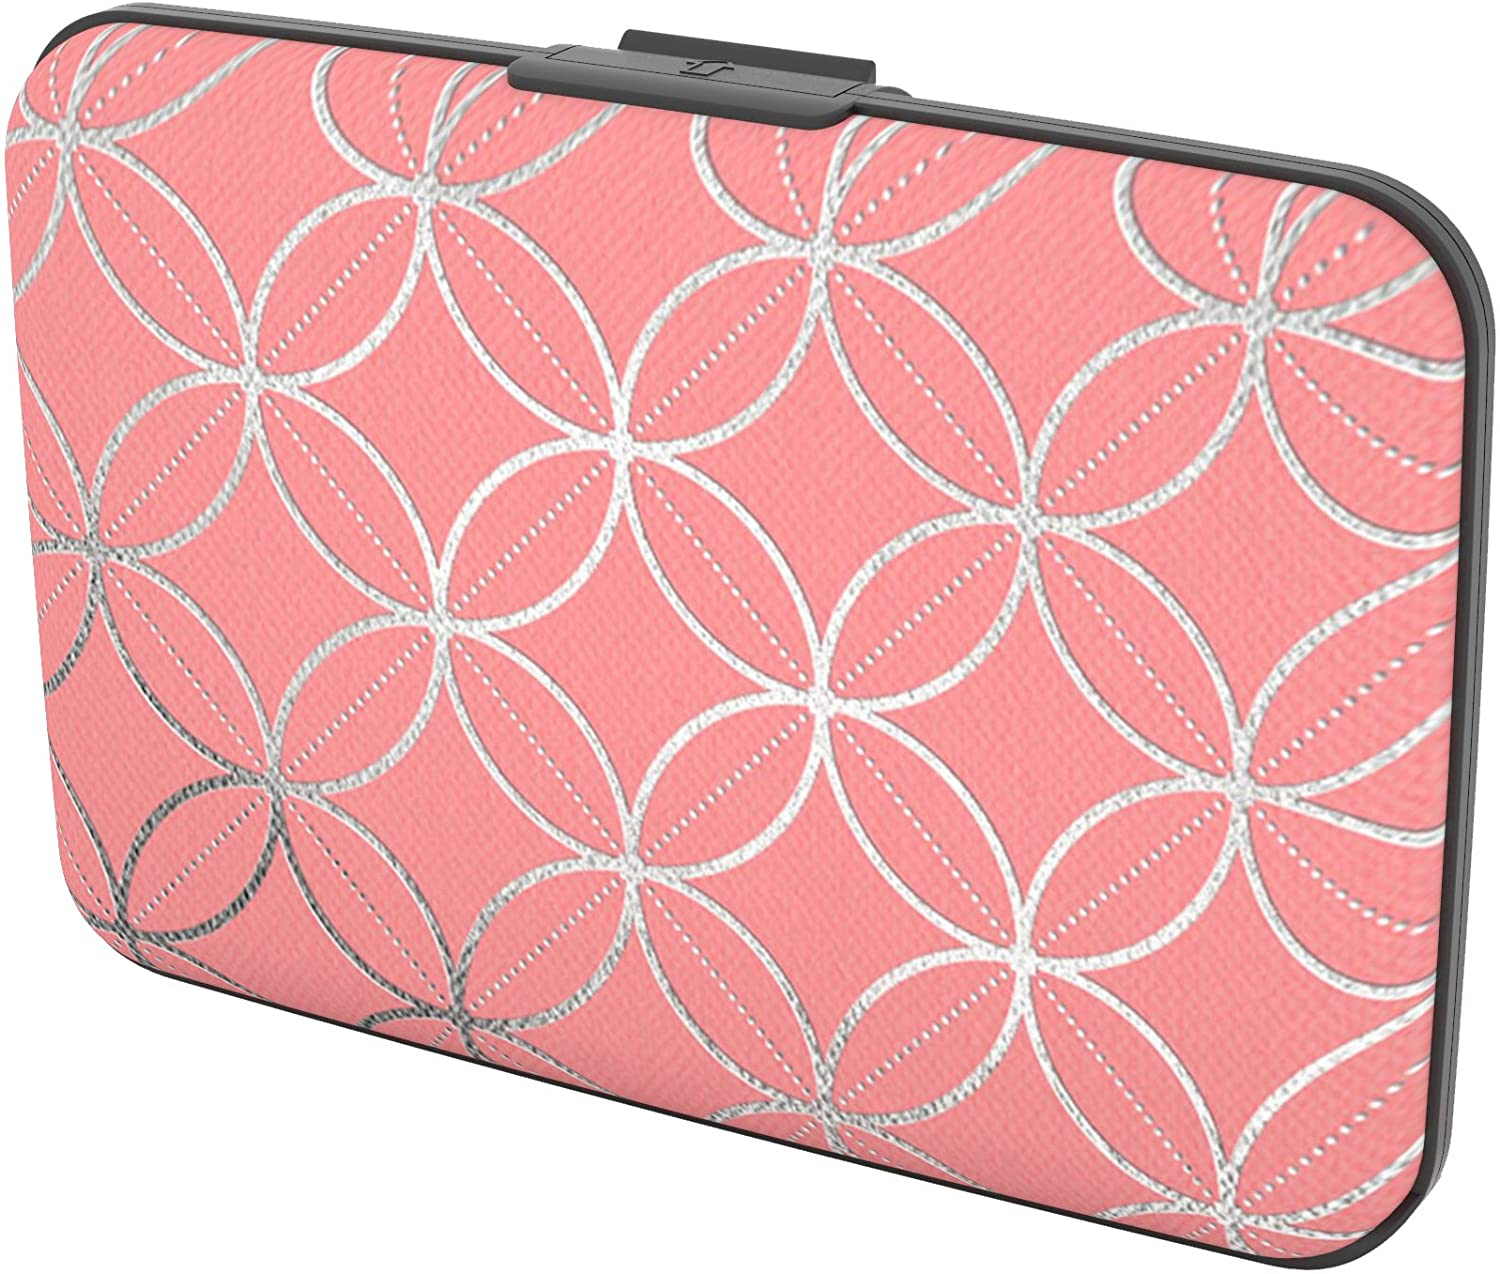 Gift Trenz Security Wallet-Circles and Diamonds, Pink/Silver